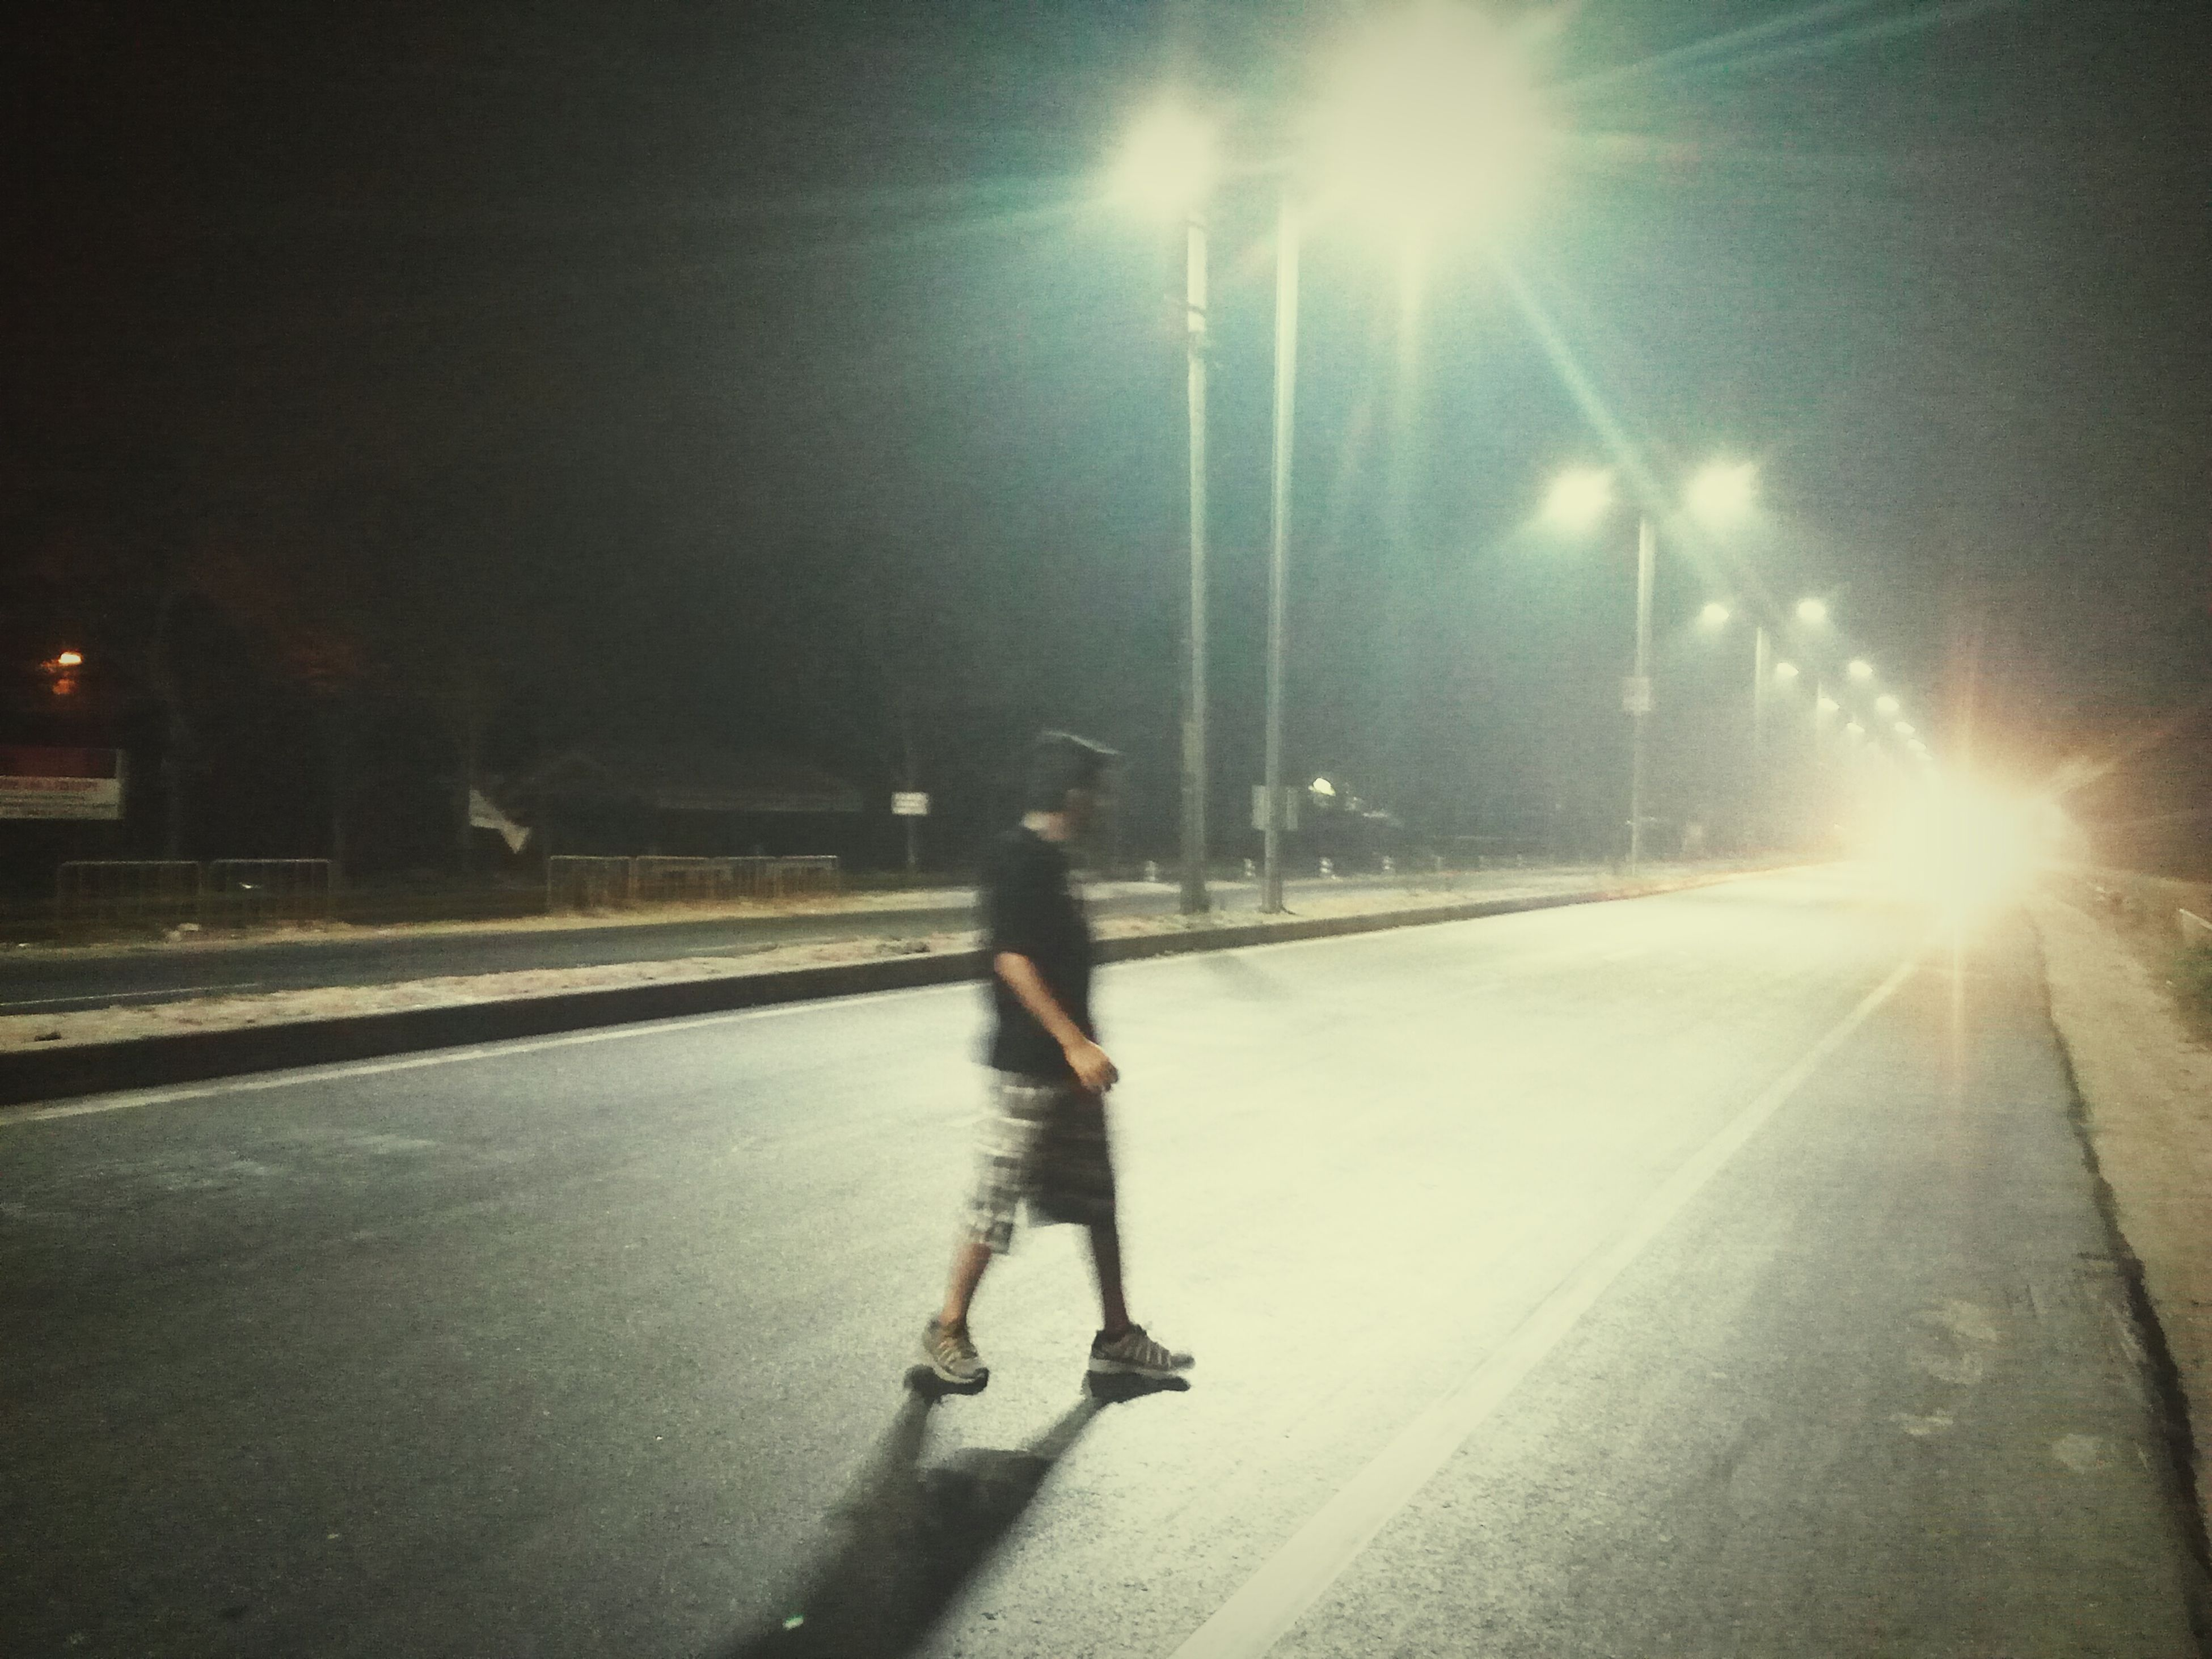 Highway poses Highway Noob Photography Candid Badassery! Blurred Motion Blurry Perfection Street Lights